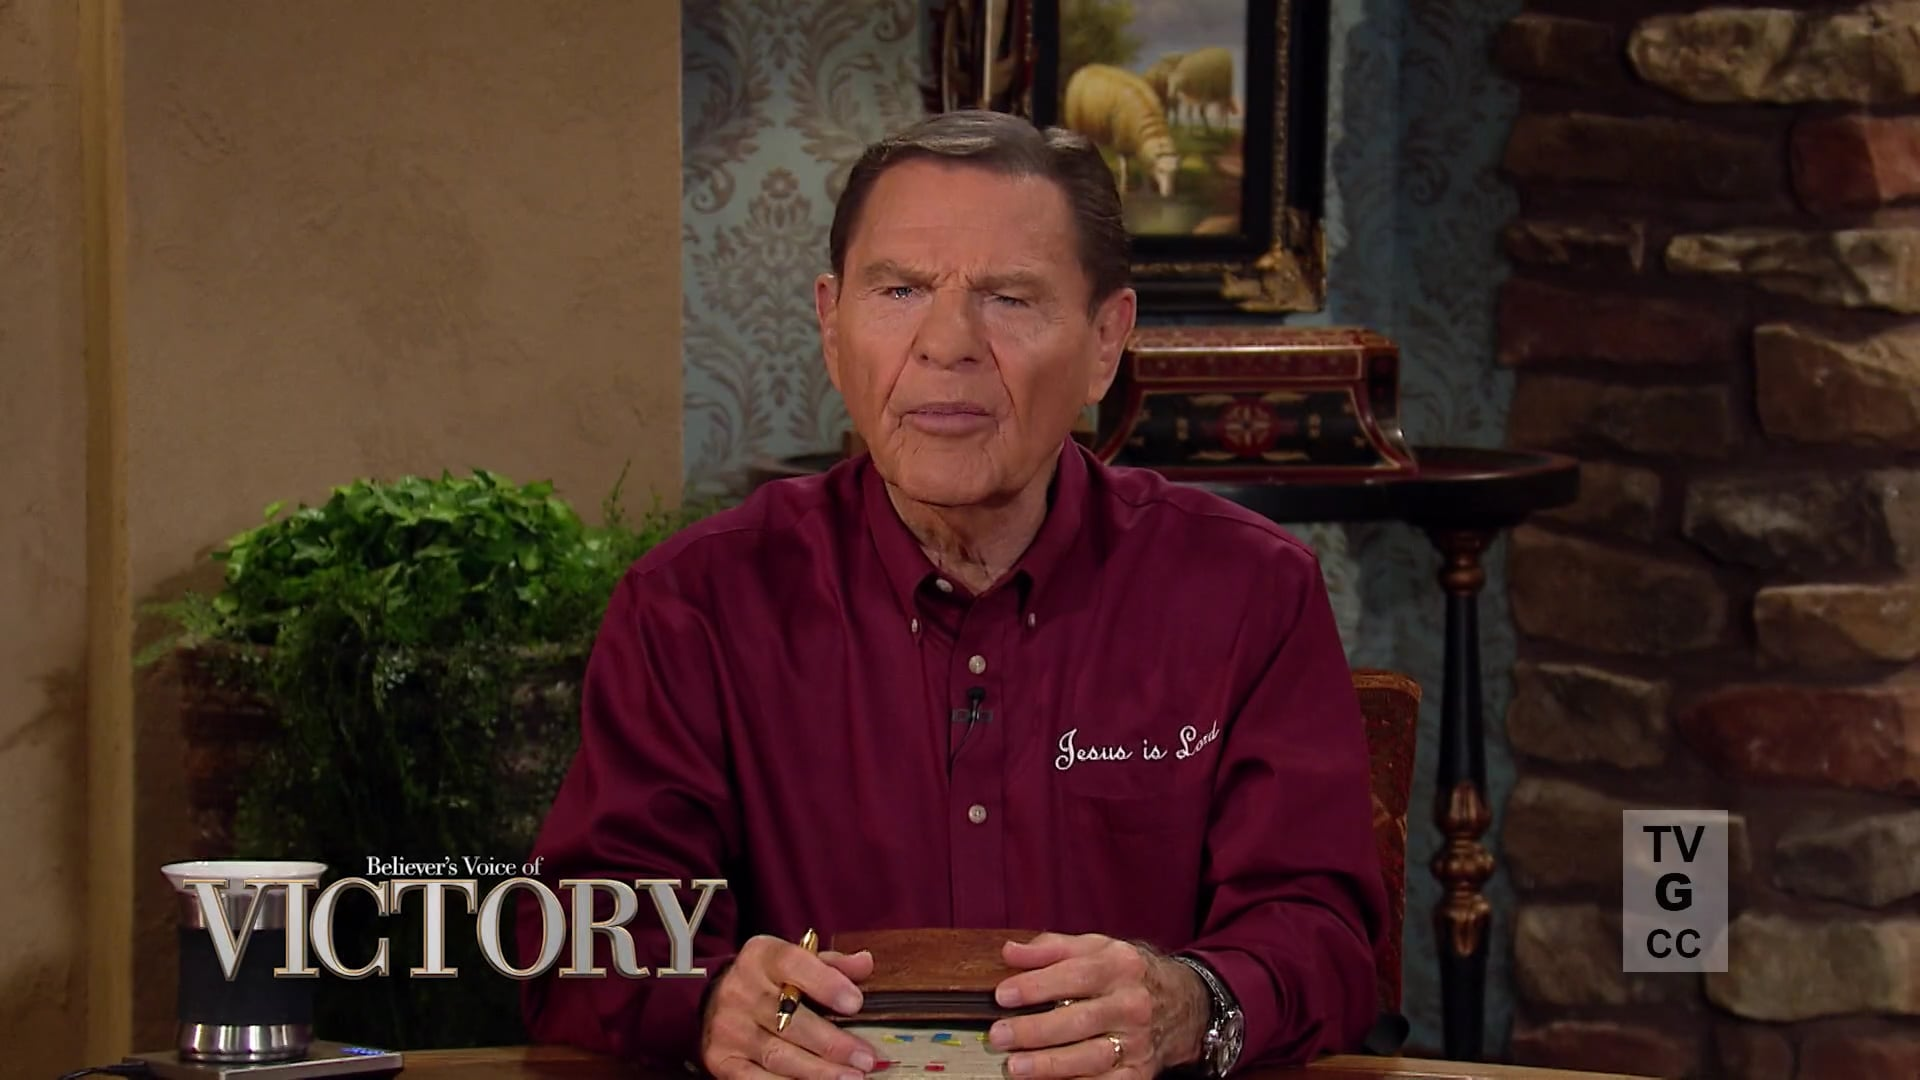 There are limitations to be conquered and strongholds to be broken! Watch Believer's Voice of Victory as Gloria Copeland and George Pearsons share about the power of renewing your mind. Total immersion in God's WORD will take the limits off your faith and change your circumstances!